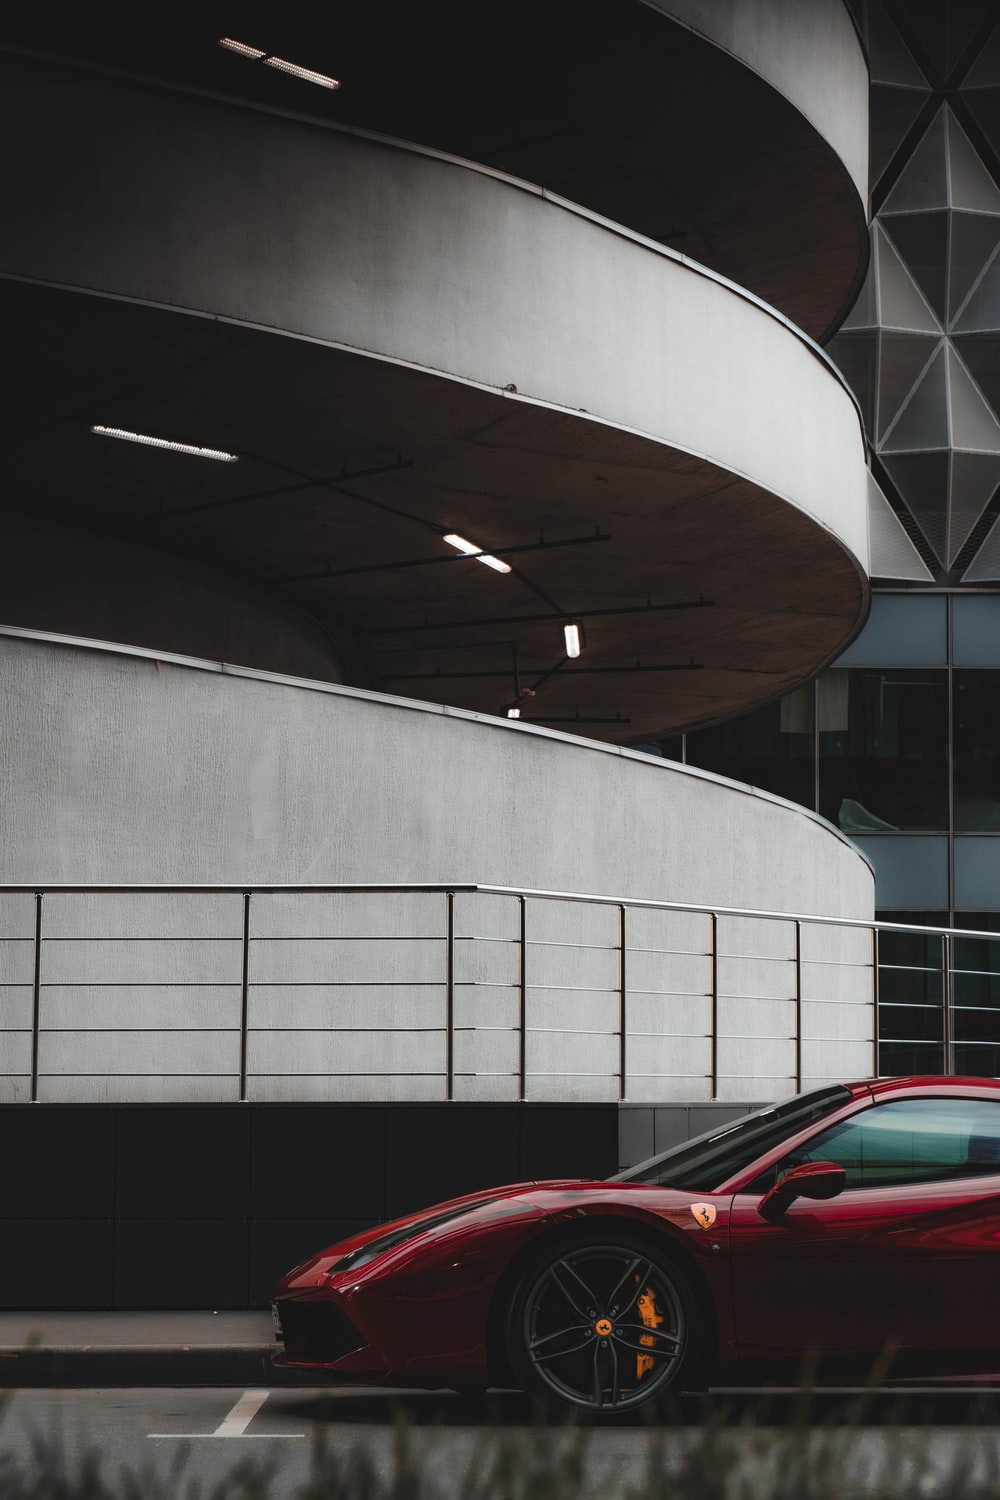 red car parked near white concrete building